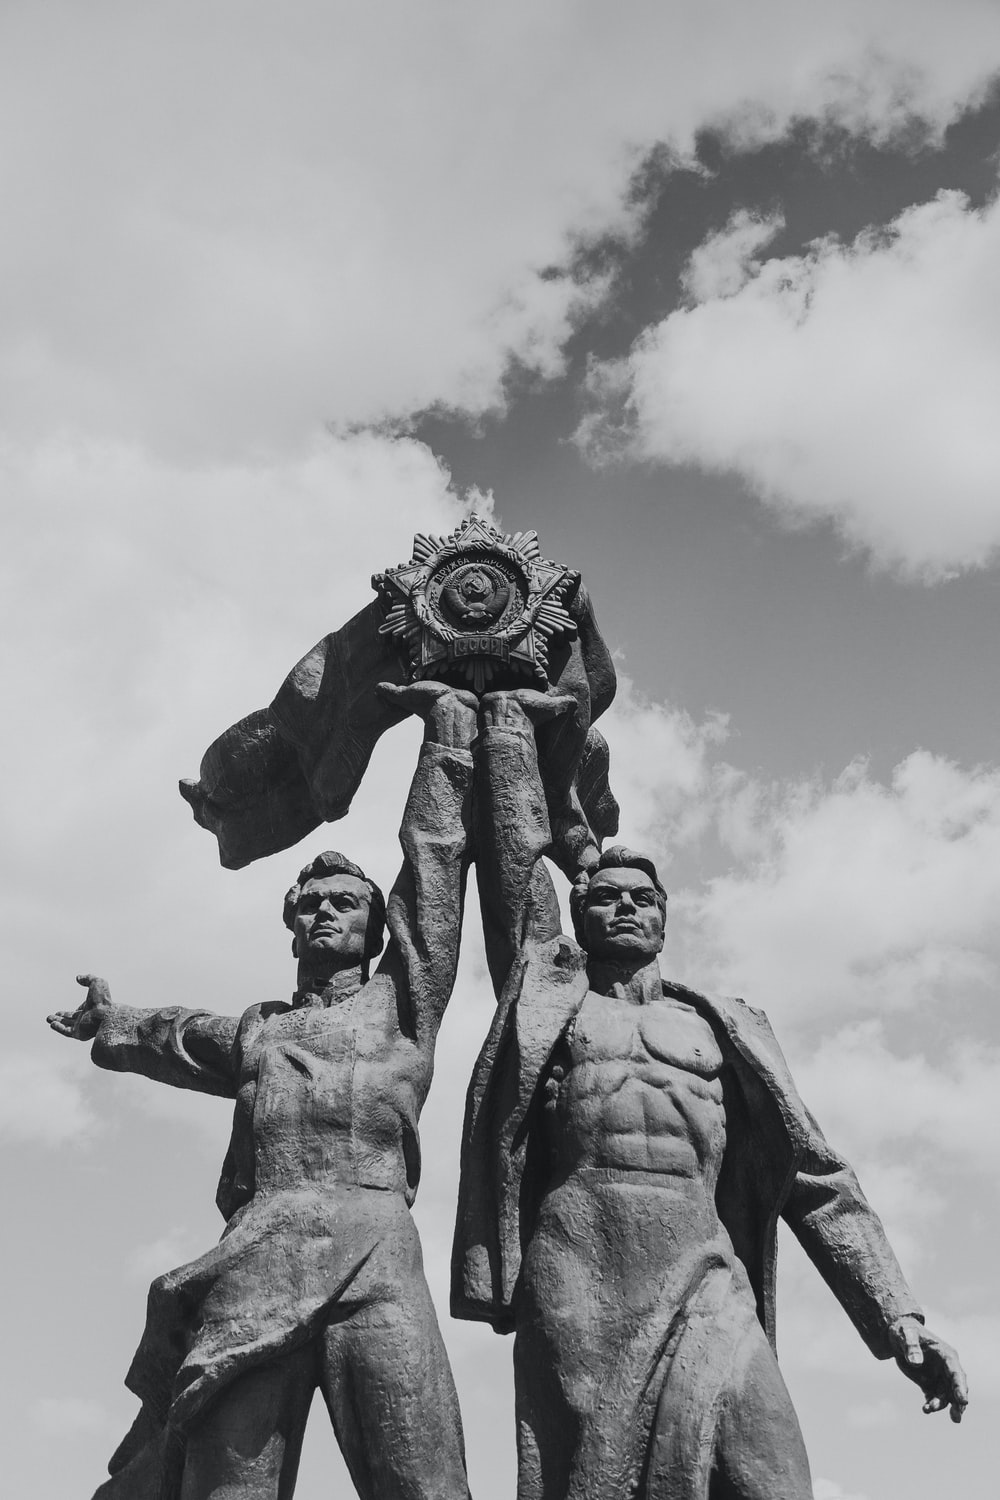 grayscale photo of two men statue